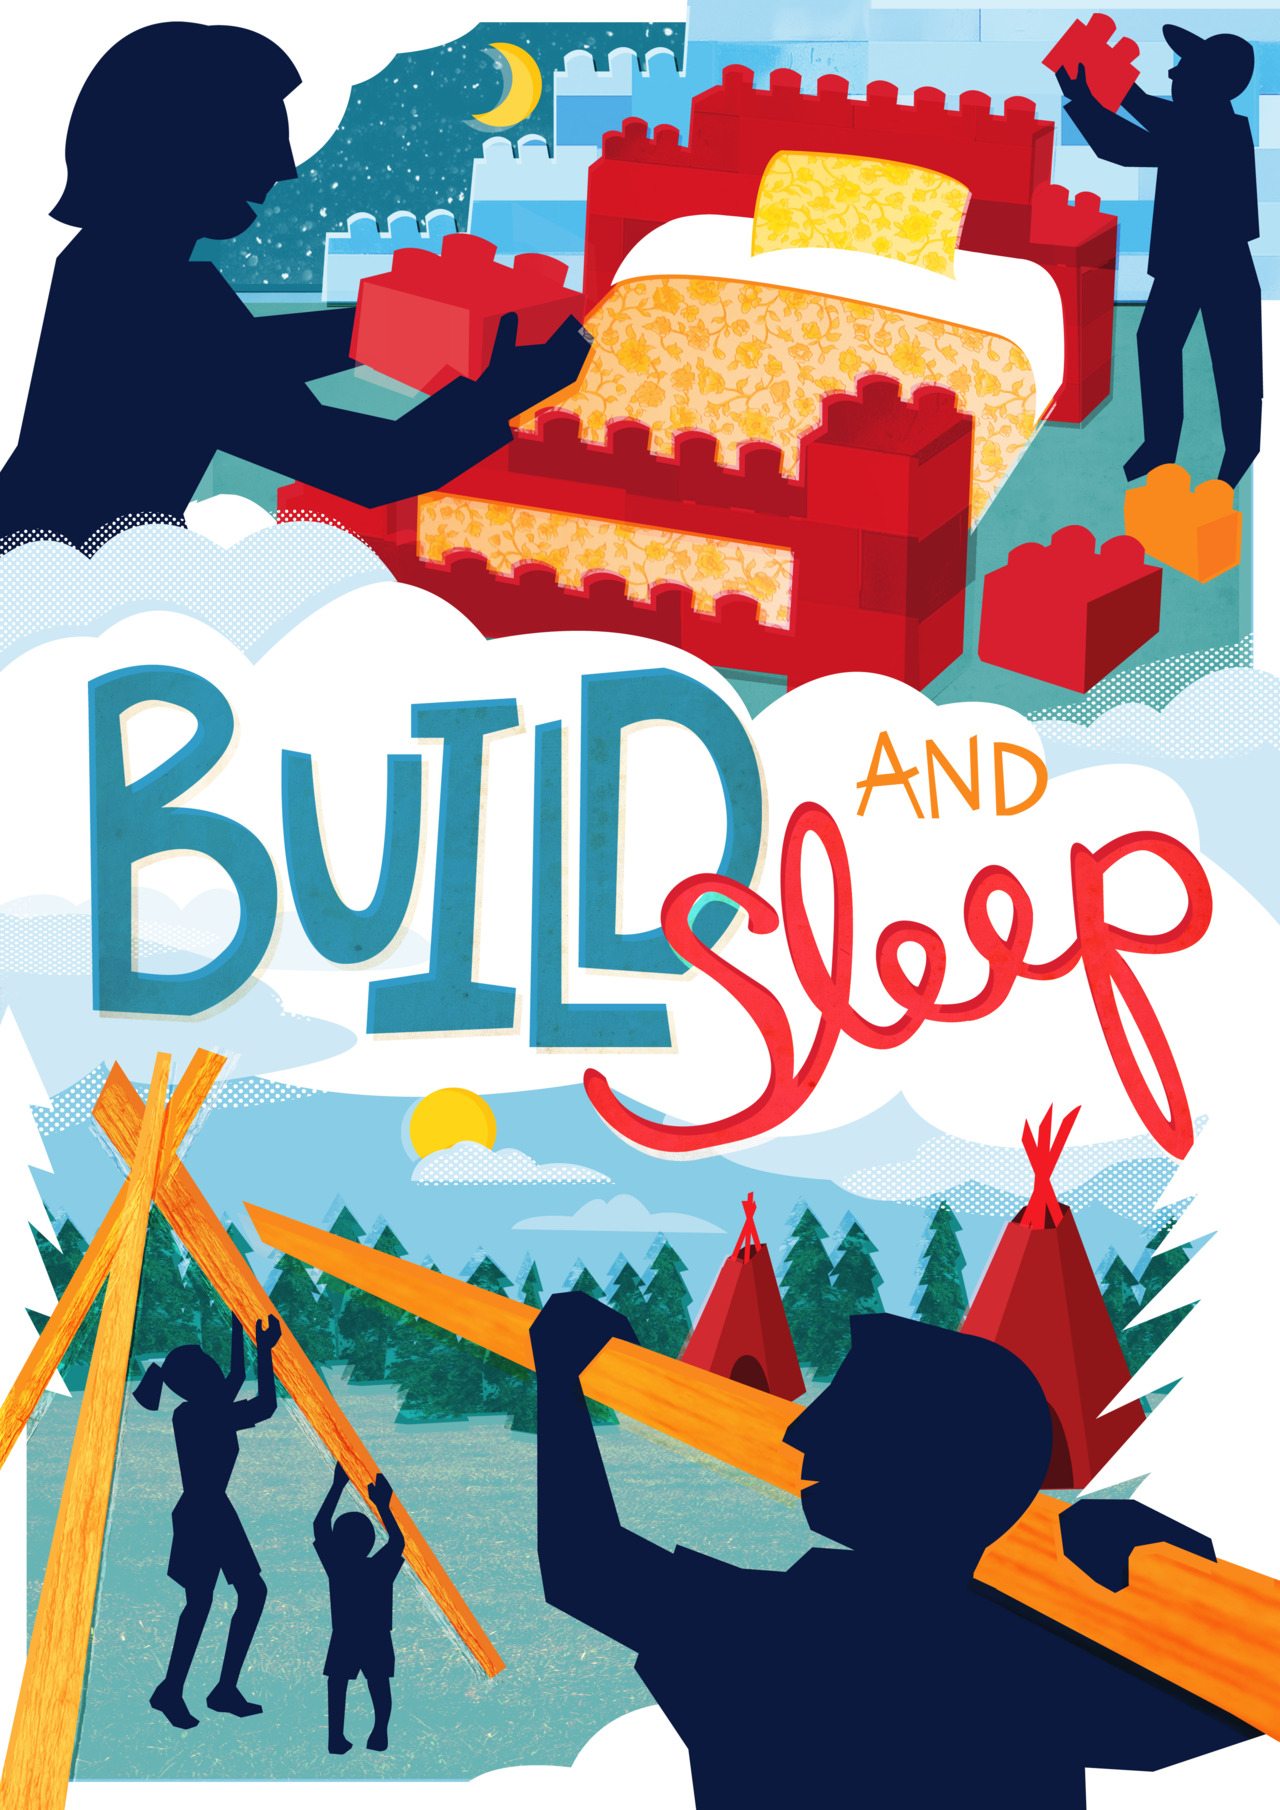 Last December, I went to Blackpool with YCN to illustrate at a conference for Merlin. While there we were asked to help them visualise their ideas, and aftwards we worked up their ideas into a finished poster - Above is my poster for an idea my group had where families build their own bed or overnight stay.